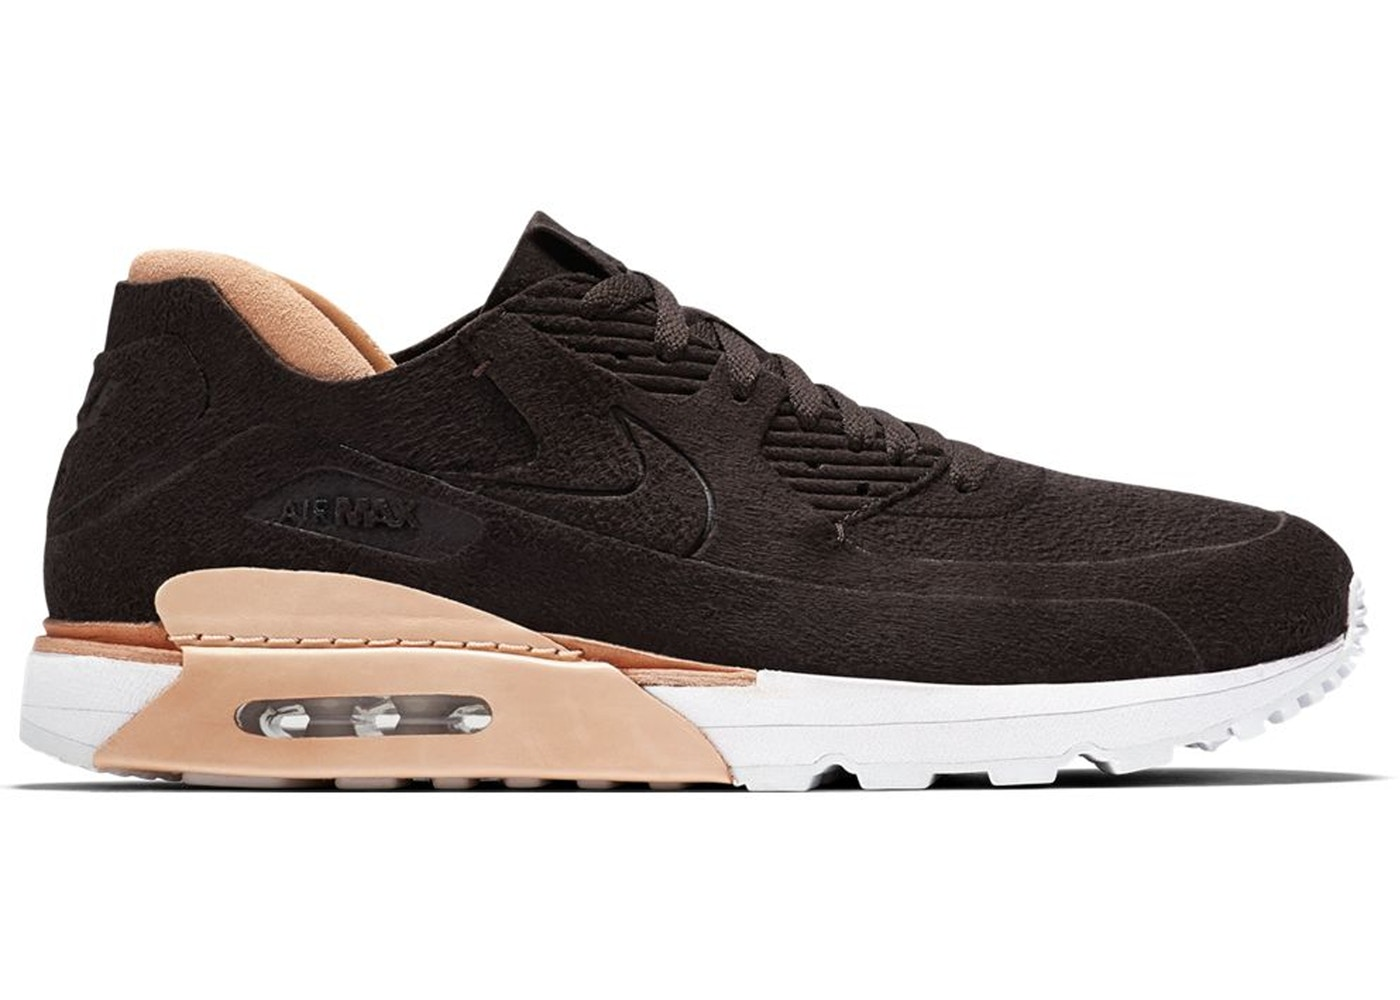 b8b73b24b0 Sell. or Ask. Size: 13. View All Bids. Air Max 90 Royal Velvet Brown